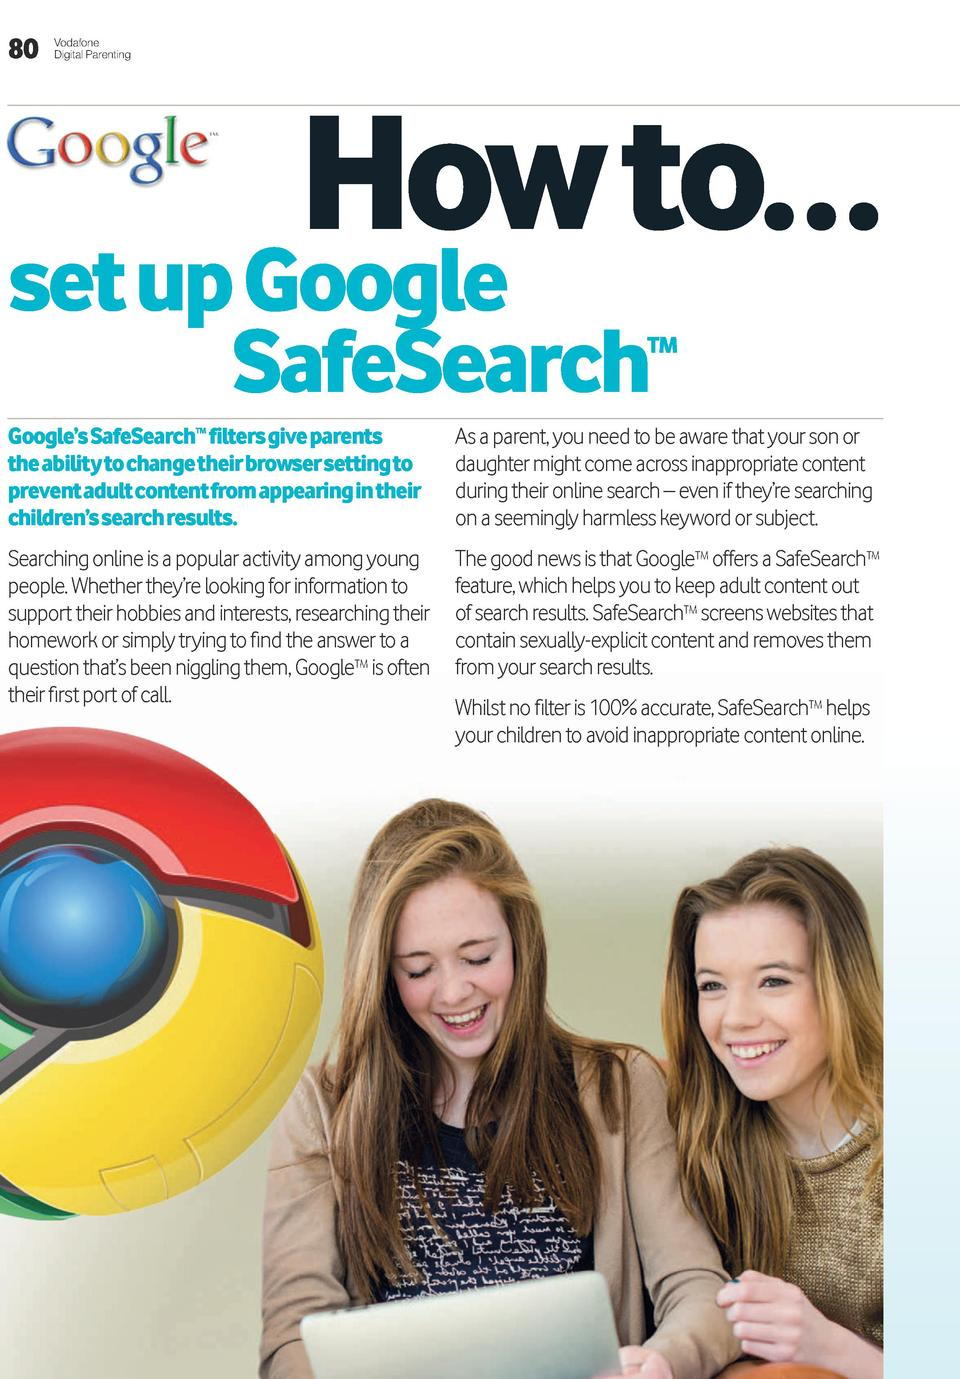 80  Vodafone Digital Parenting  How to    set up Google SafeSearch  tM  Google   s SafeSearch filters give parents the abi...